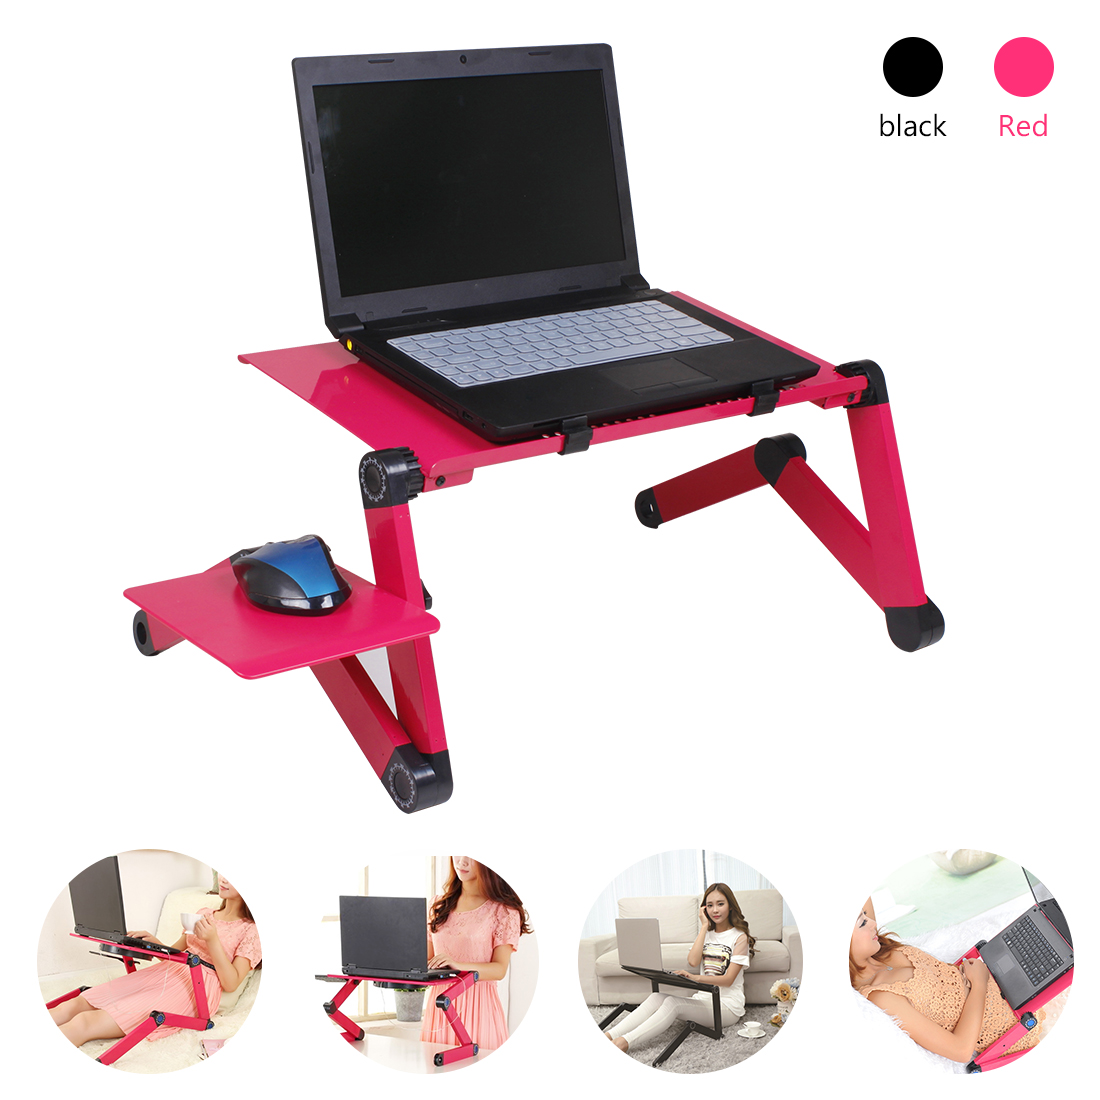 Aluminum Adjustable Laptop Desk Ergonomic Folding Sofa Bed Lapdesk Tray PC Table Stand Notebook Table Desk Stand With Mouse Pad